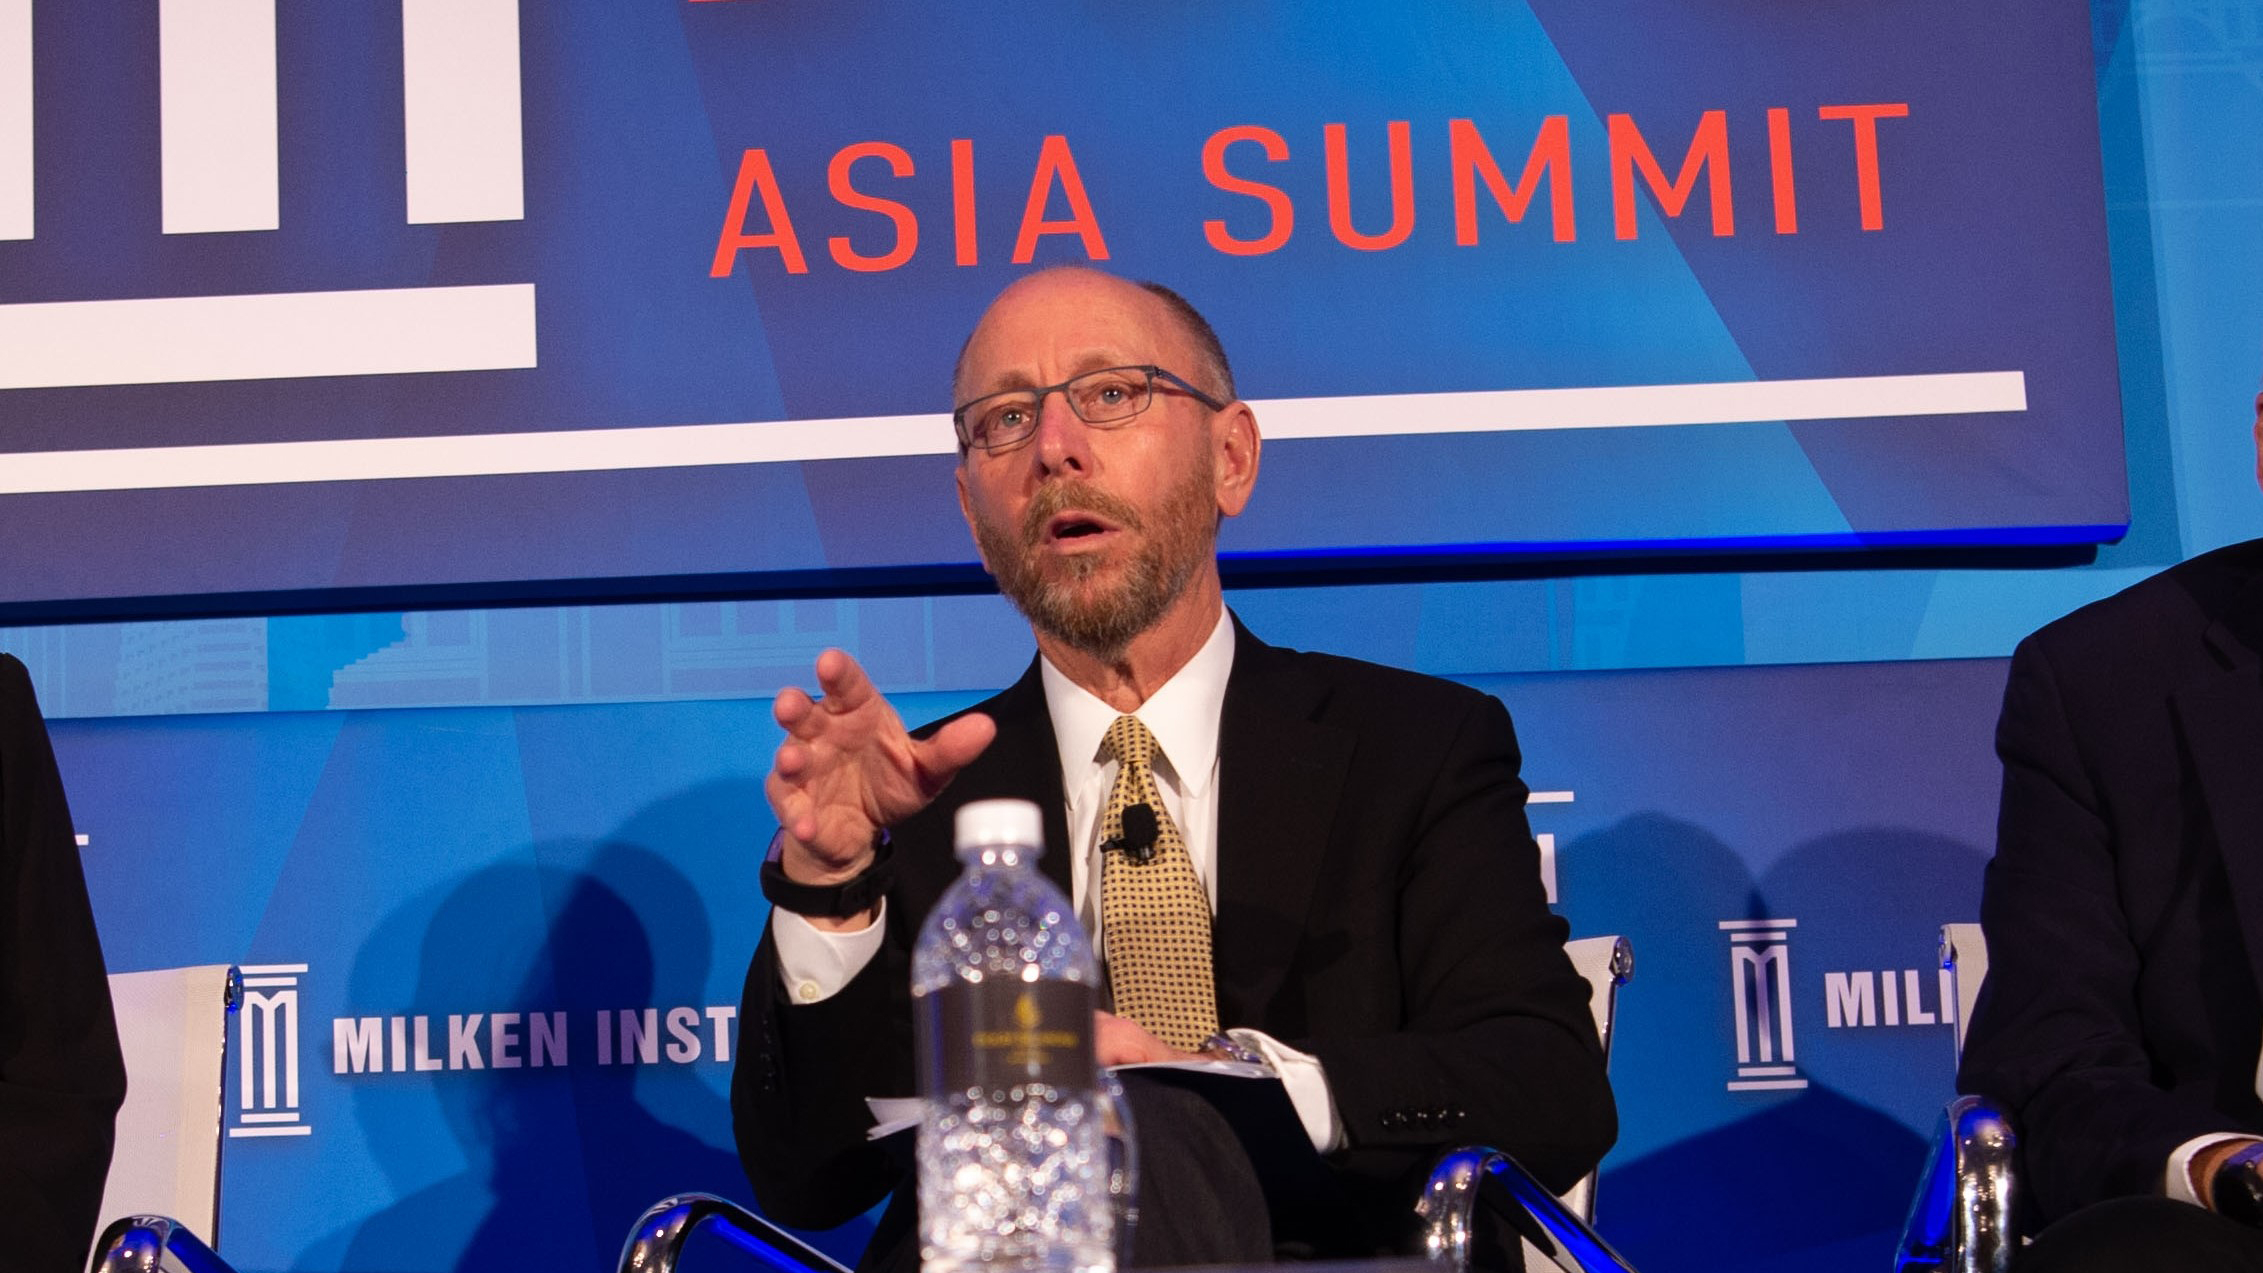 Paul Irving Speaking at Asia Summit